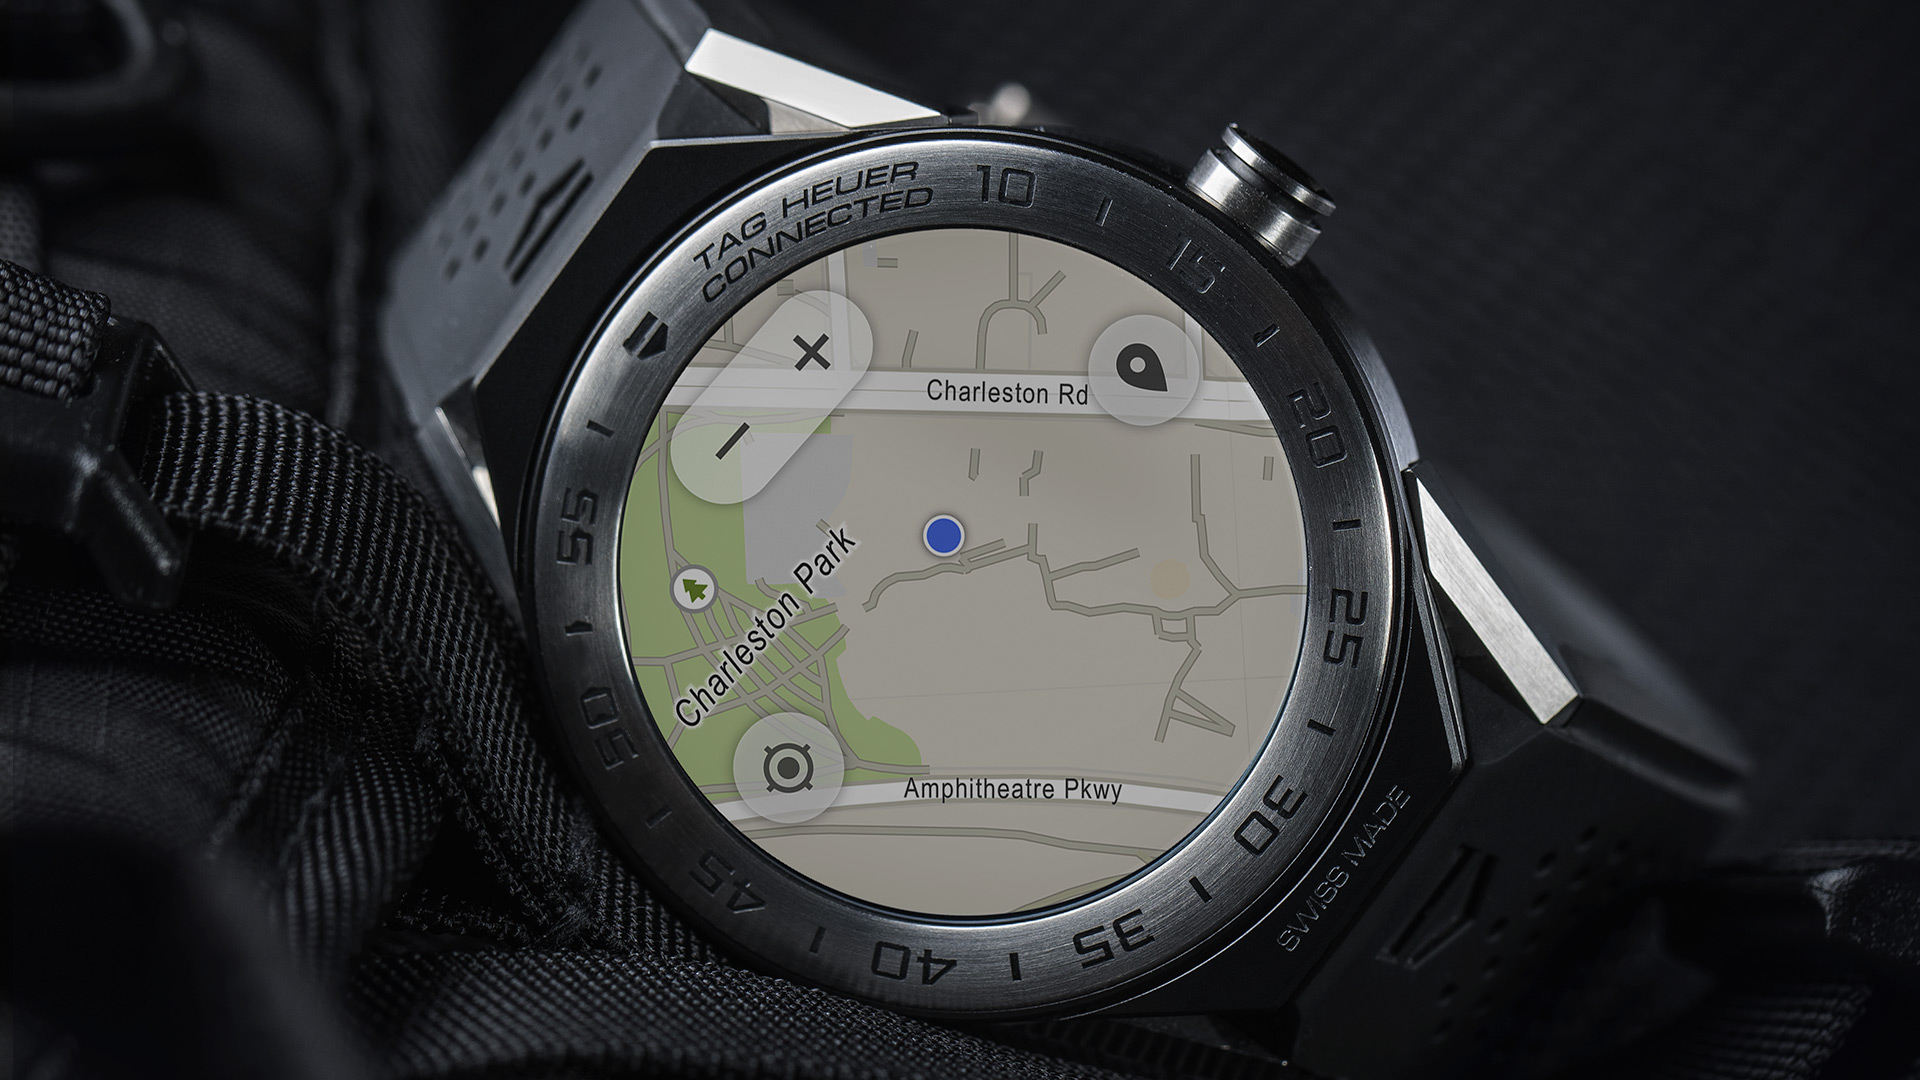 Ahead of time: the very best in luxury smart watches